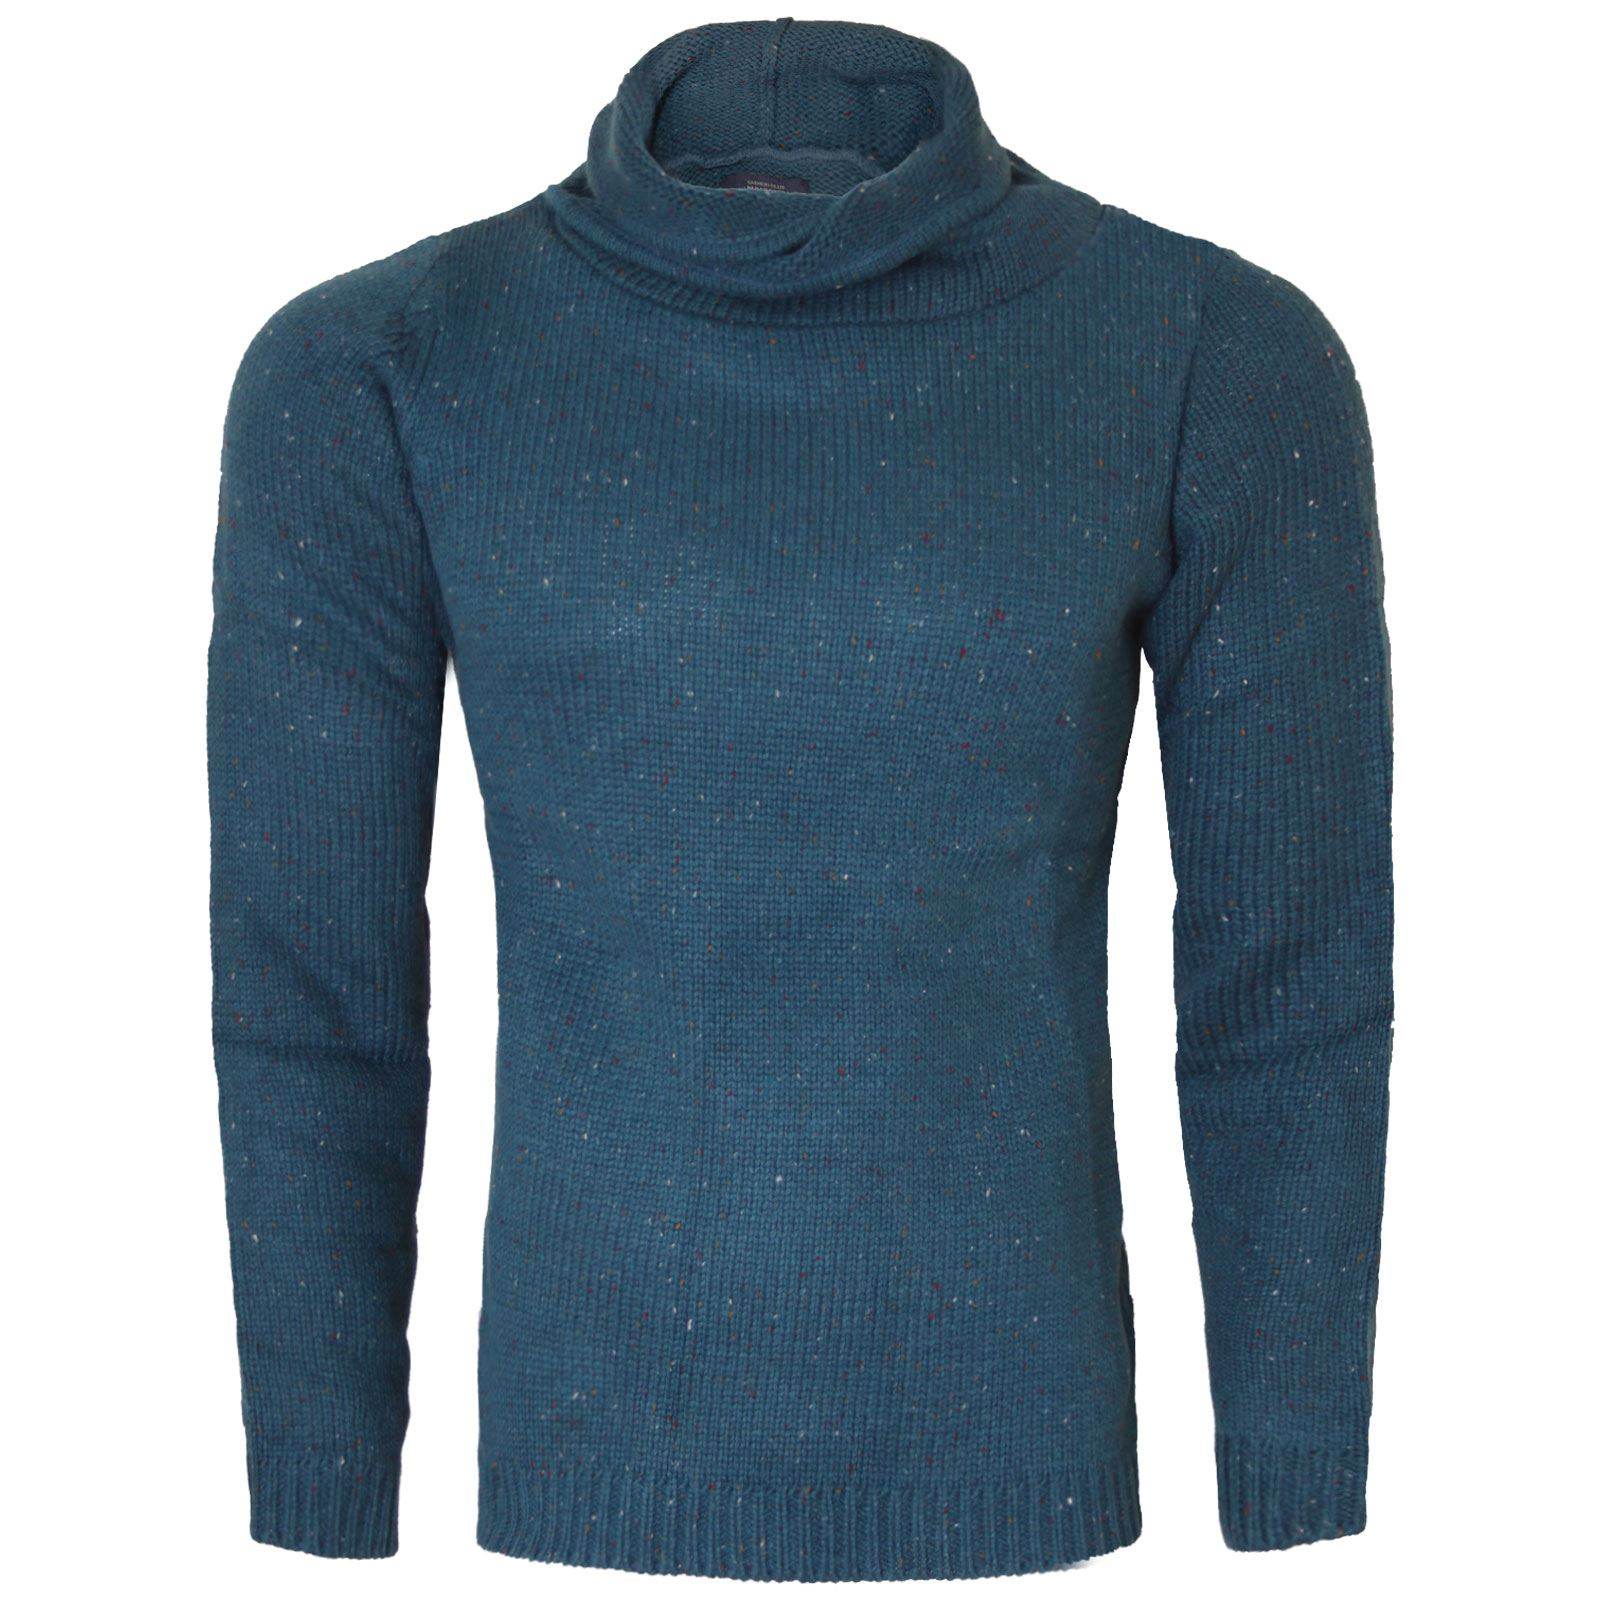 Find COWL NECK SWEATER from a vast selection of Clothing for Men. Get great deals on eBay!